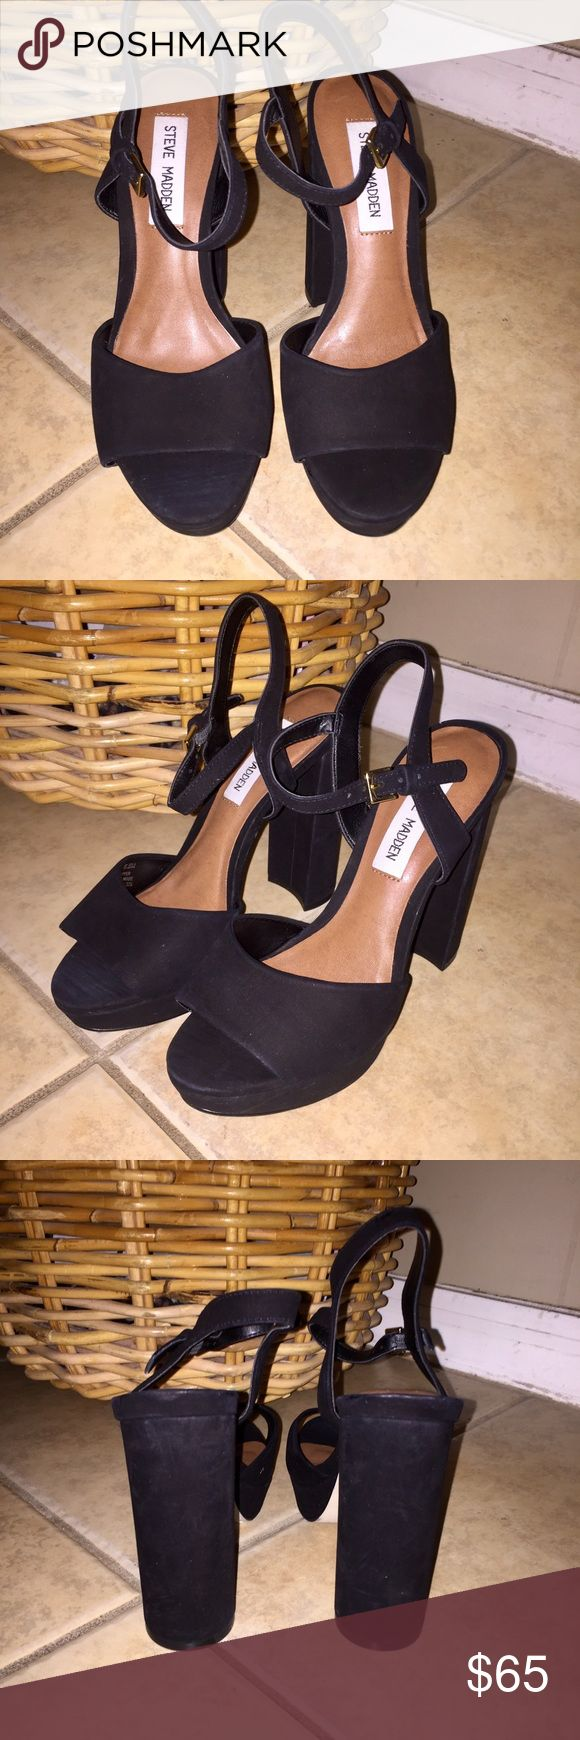 STEVE MADDEN Kierra Platform Sandal Black Suede BRAND NEW Steve Madden Kierra platform heels in a gorgeous black suede. These shoes are perfect for any casual or formal outing and match with almost anything. Fit true to size! These are a steal! In stores for $99. Make an offer💞 Steve Madden Shoes Platforms